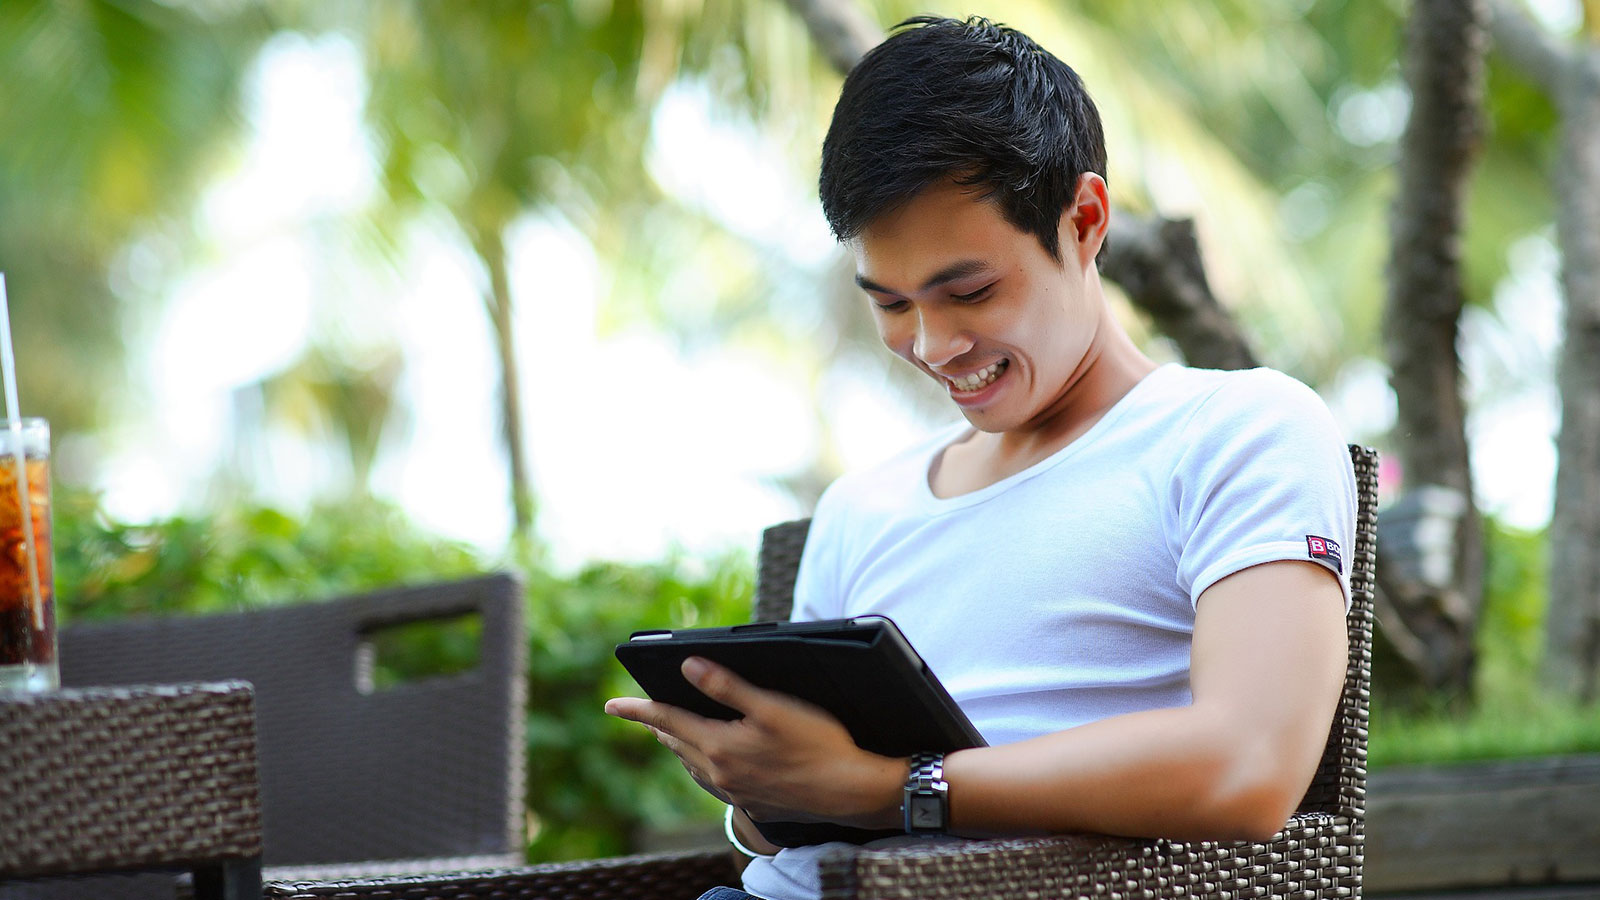 man on mobile device